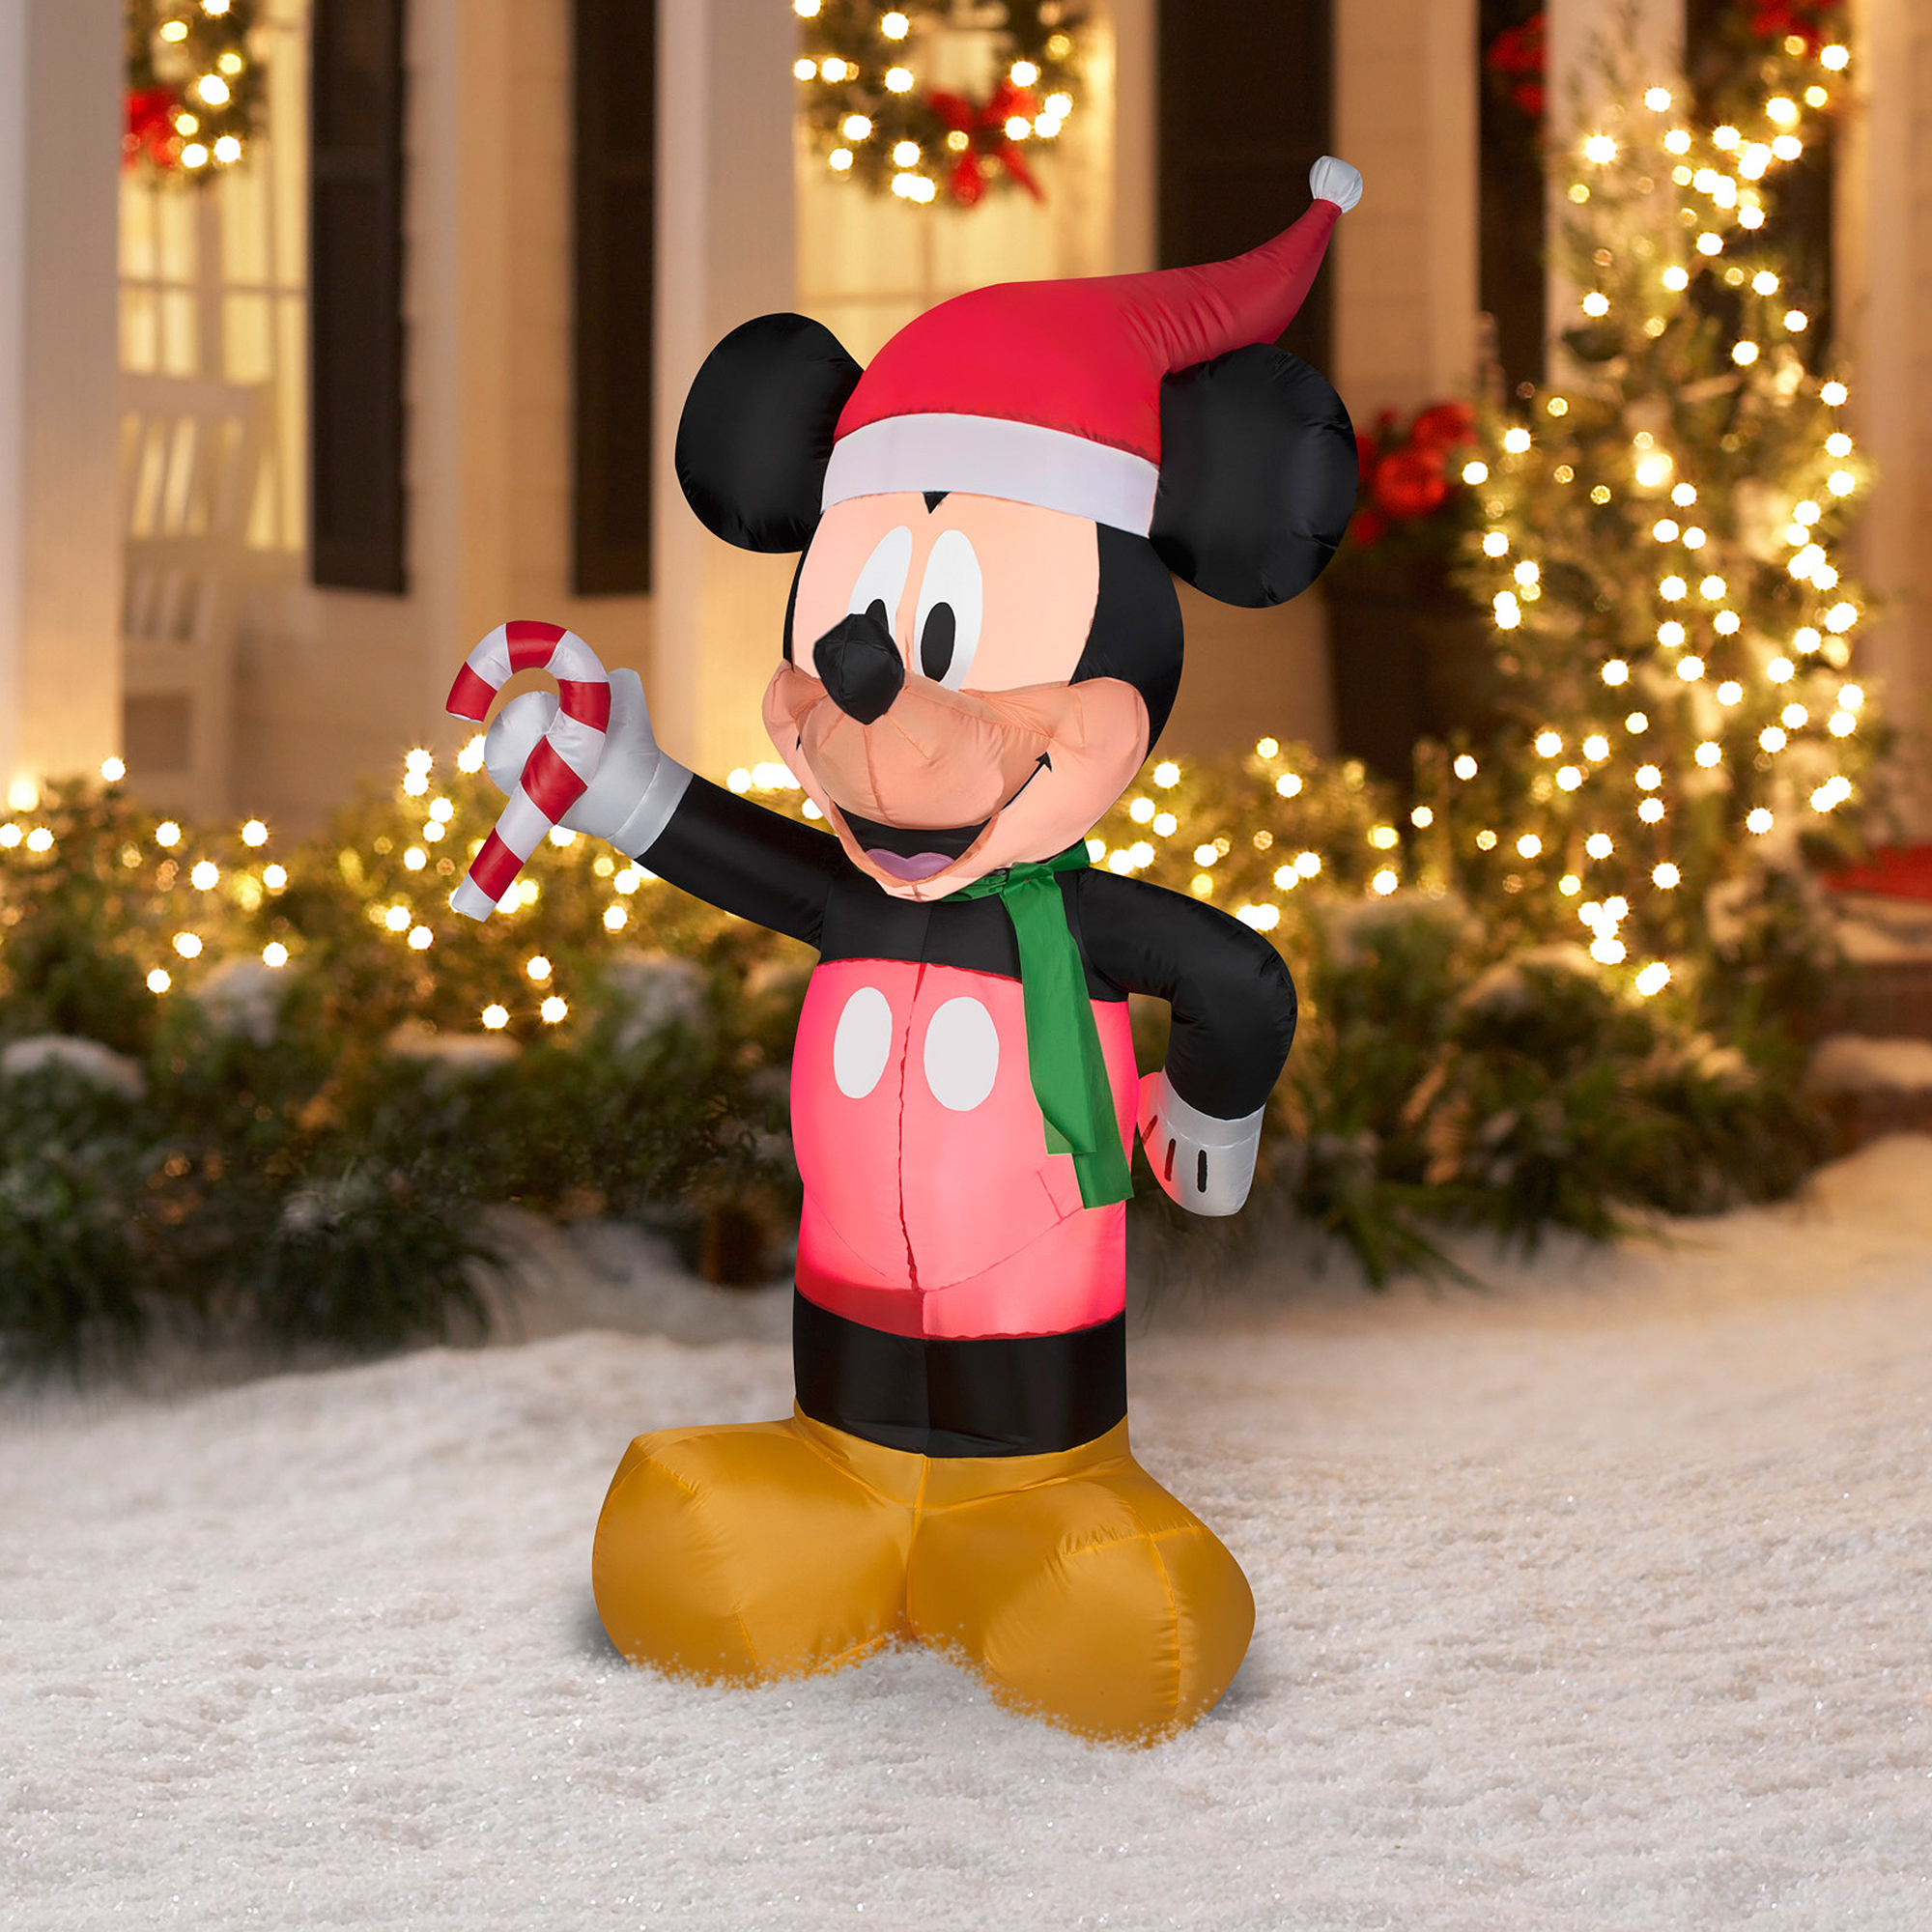 Gemmy Inflateables Holiday 35309 Air Blown Disney Mickey with Candy Cane Decor